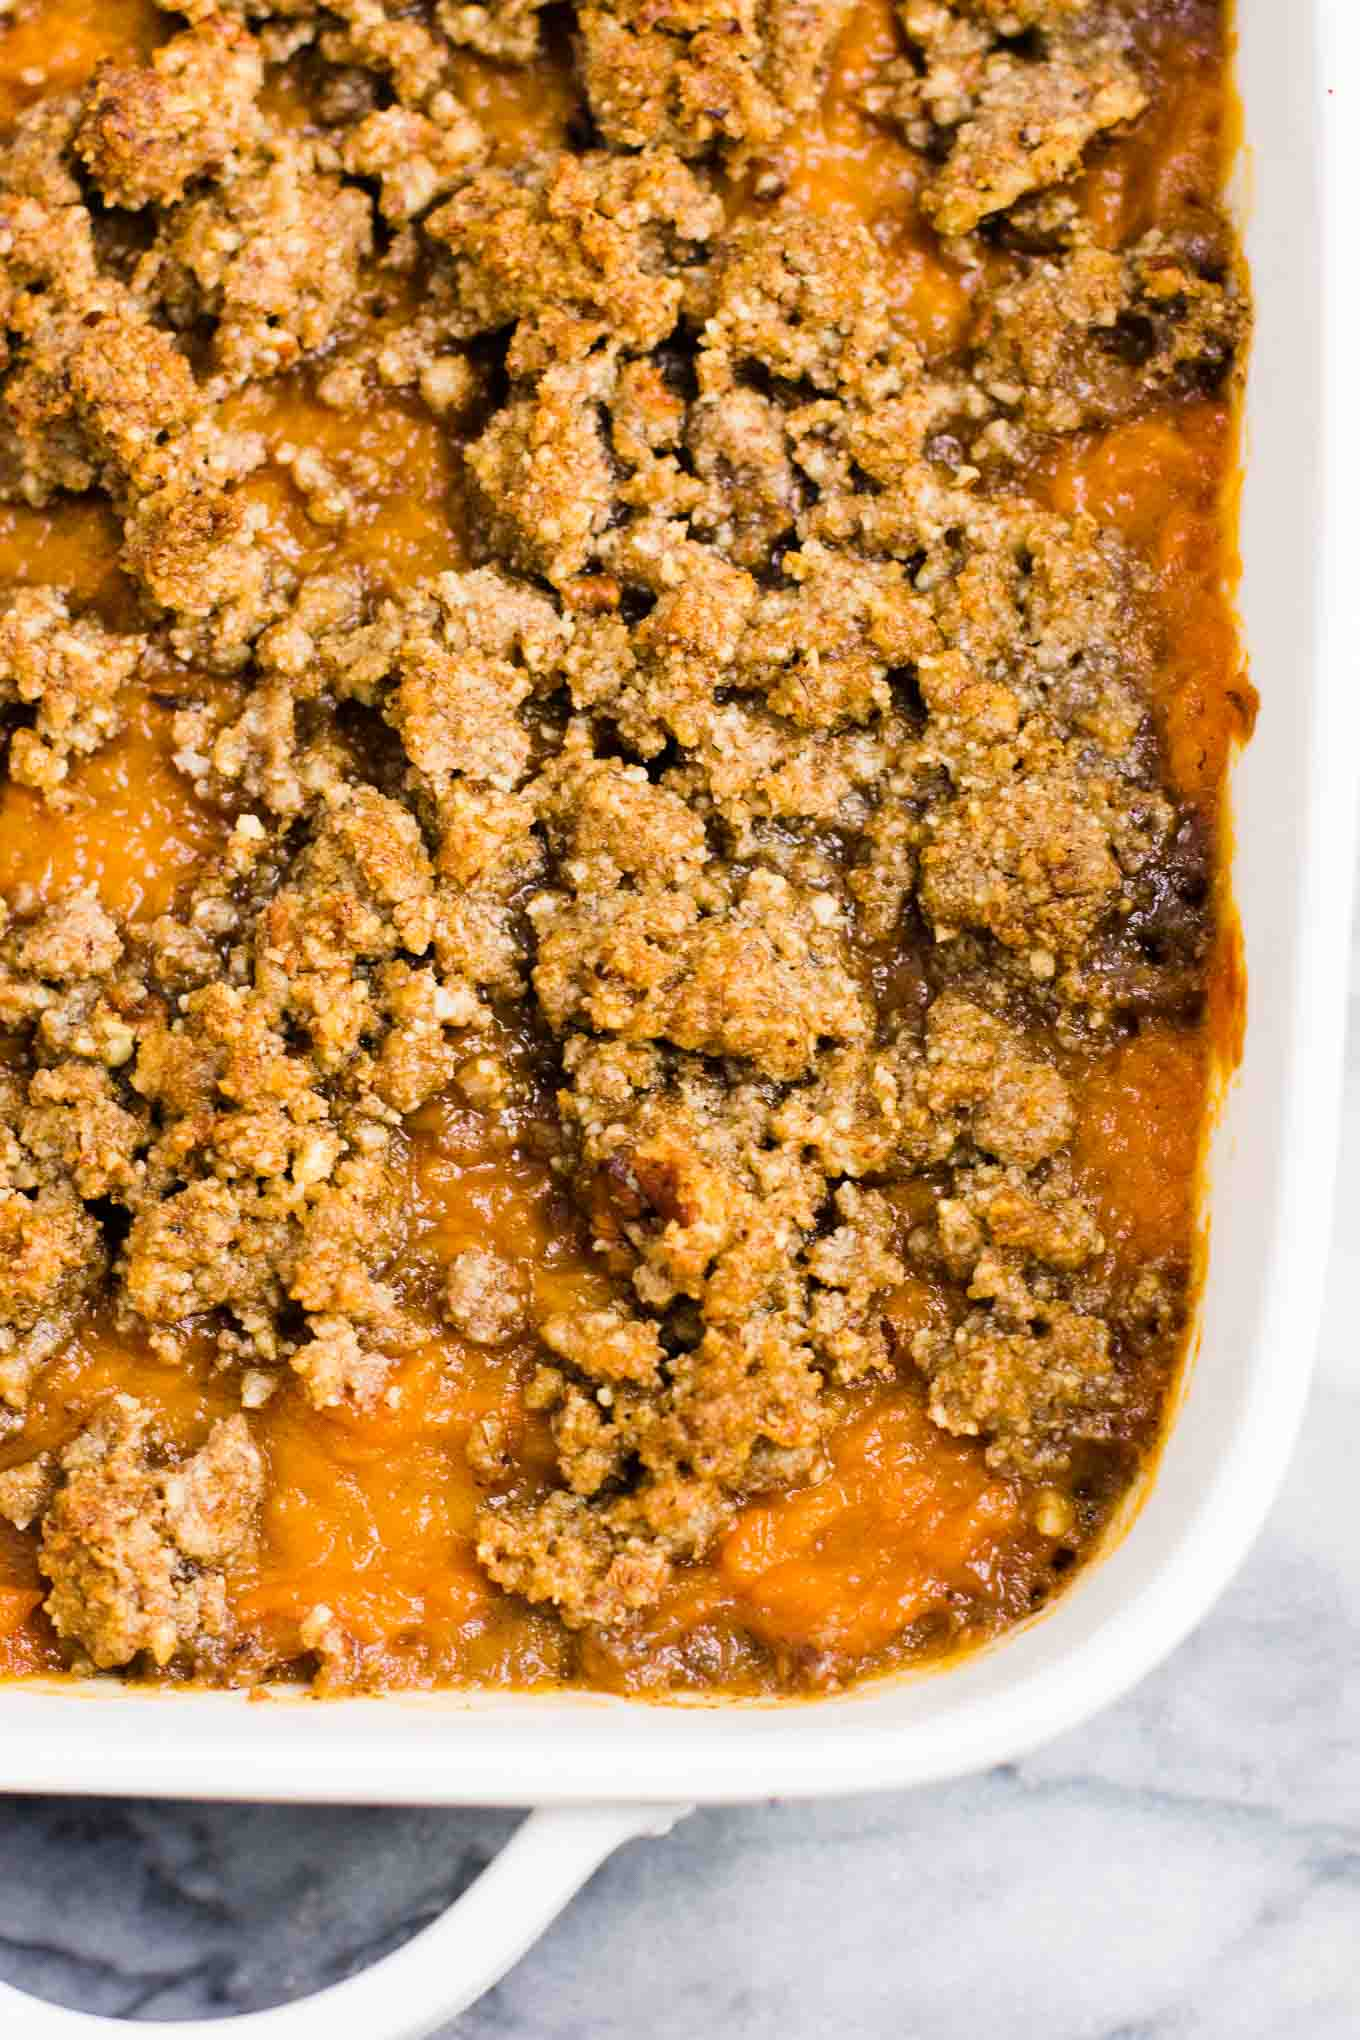 Gluten free sweet potato casserole with pecan crumble. This tastes incredible and everyone loves it! #sweetpotatocasserole #thanksgiving #pecans #glutenfree #vegetarian